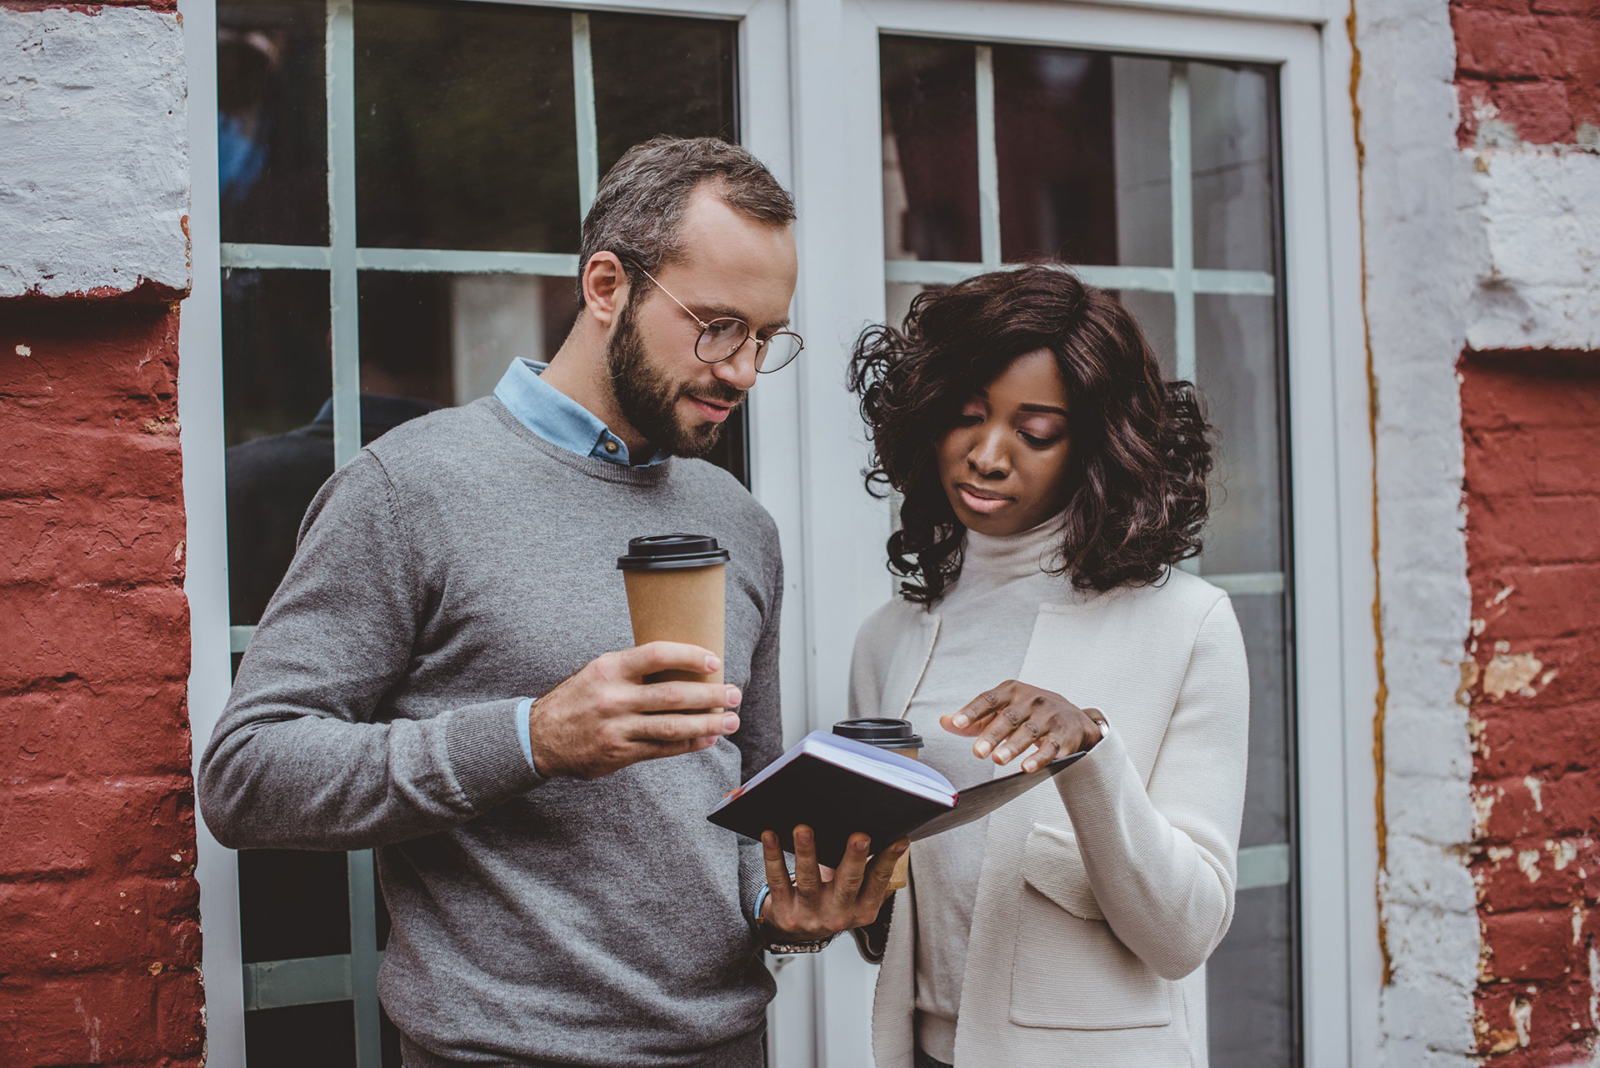 Male and female couple looking at a notebook together, man holding a cup of coffee